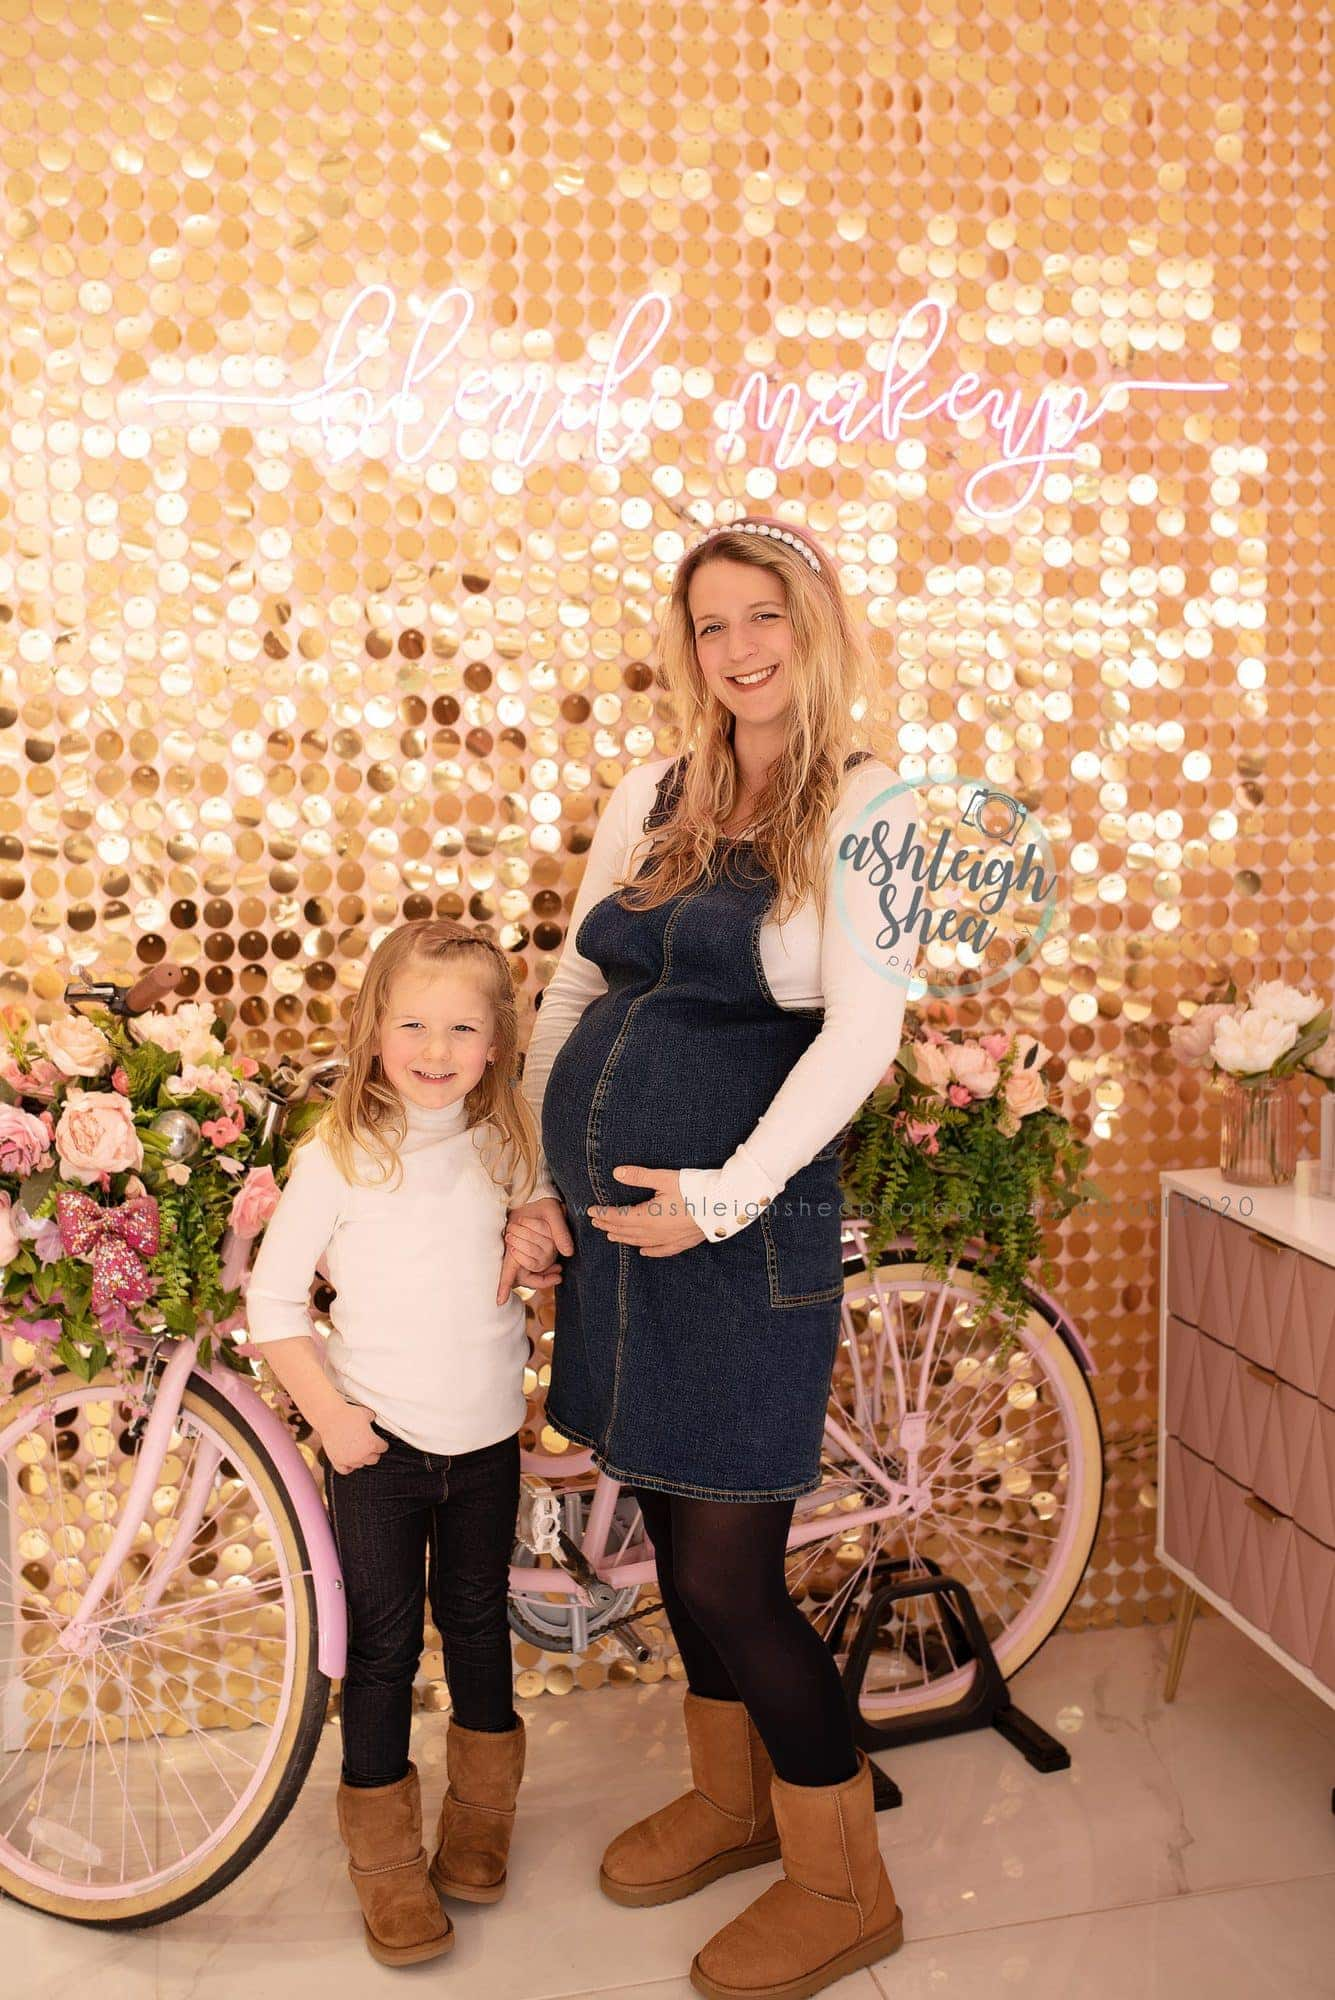 Baby Love Mum To Be Event, Maternity Portraits, Pregnancy Pictures, Pregnant, Ashleigh Shea Photography, Blend Make Up London, Bromley, Sidcup, London,Kent